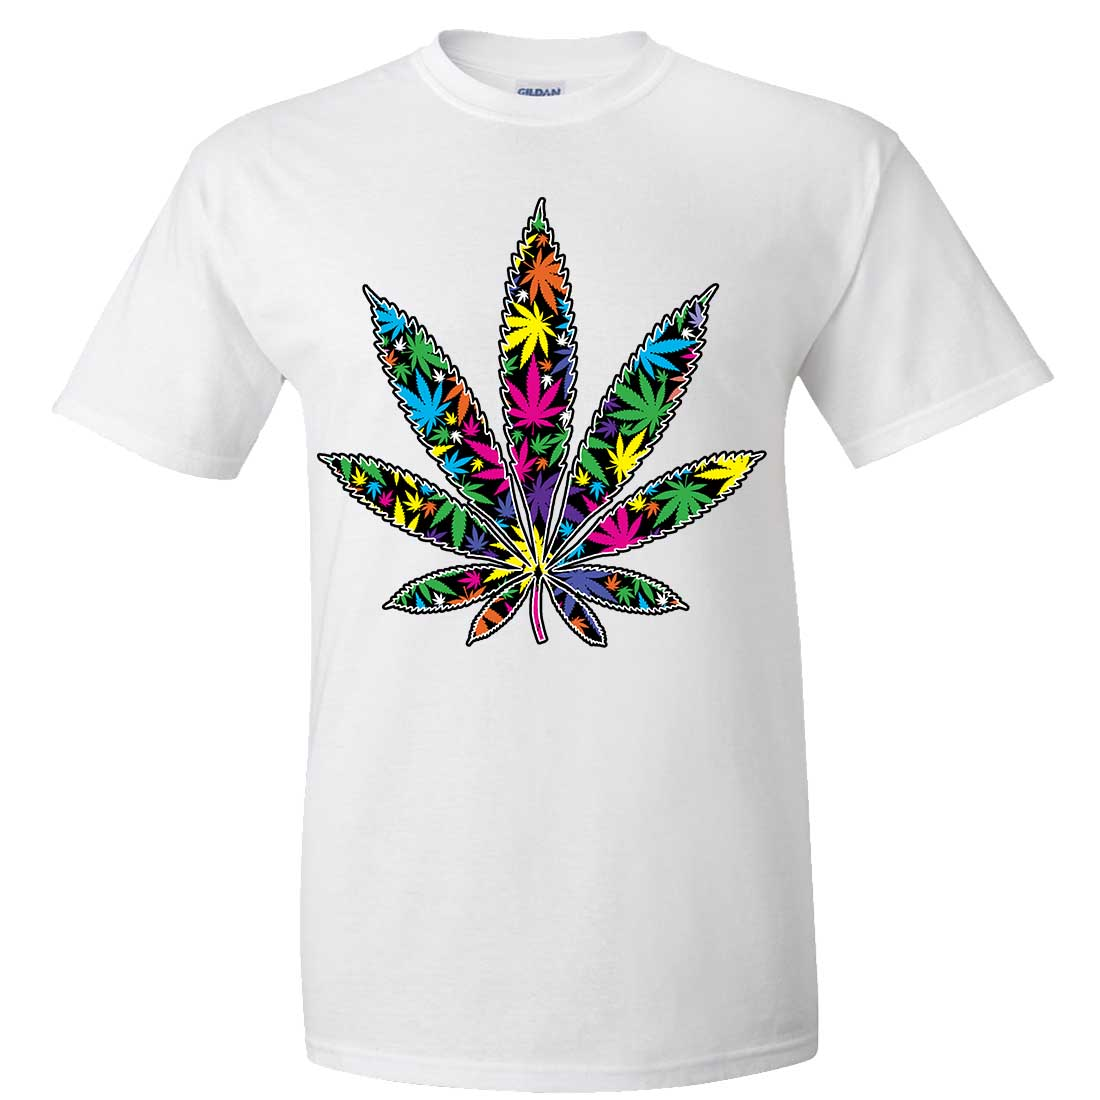 Neon party pot leaf asst colors t shirt tee ebay for How to sell t shirts